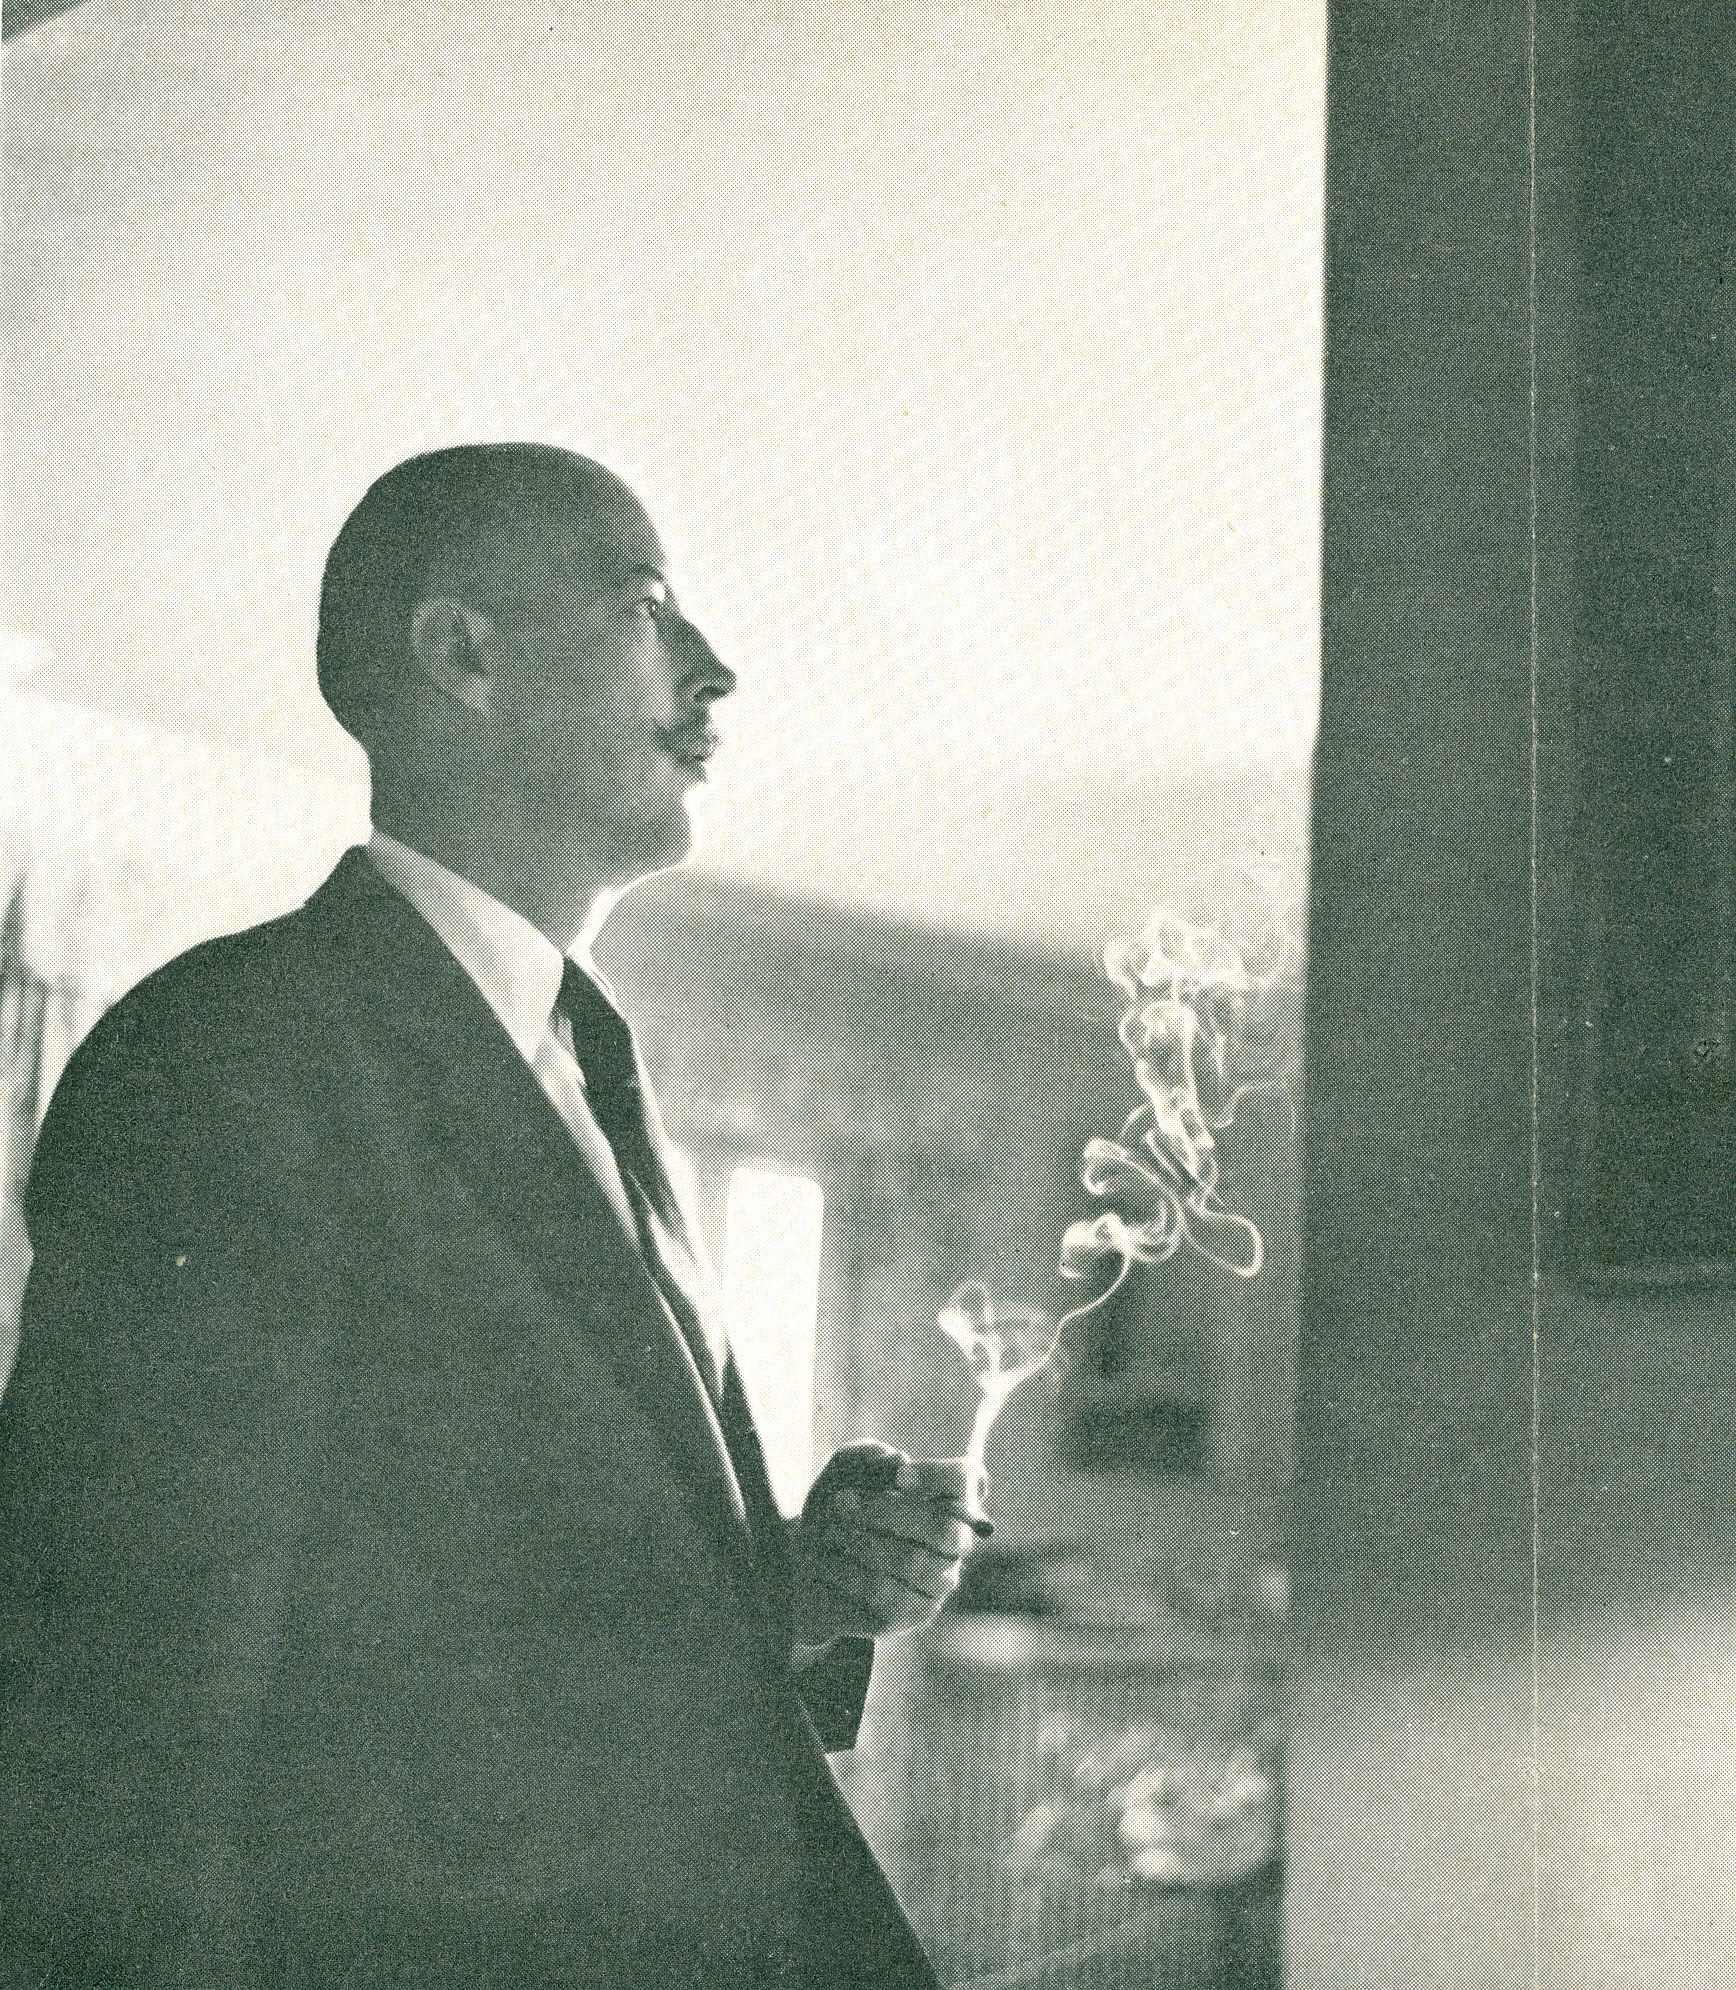 Heinrich with cigarette in profile